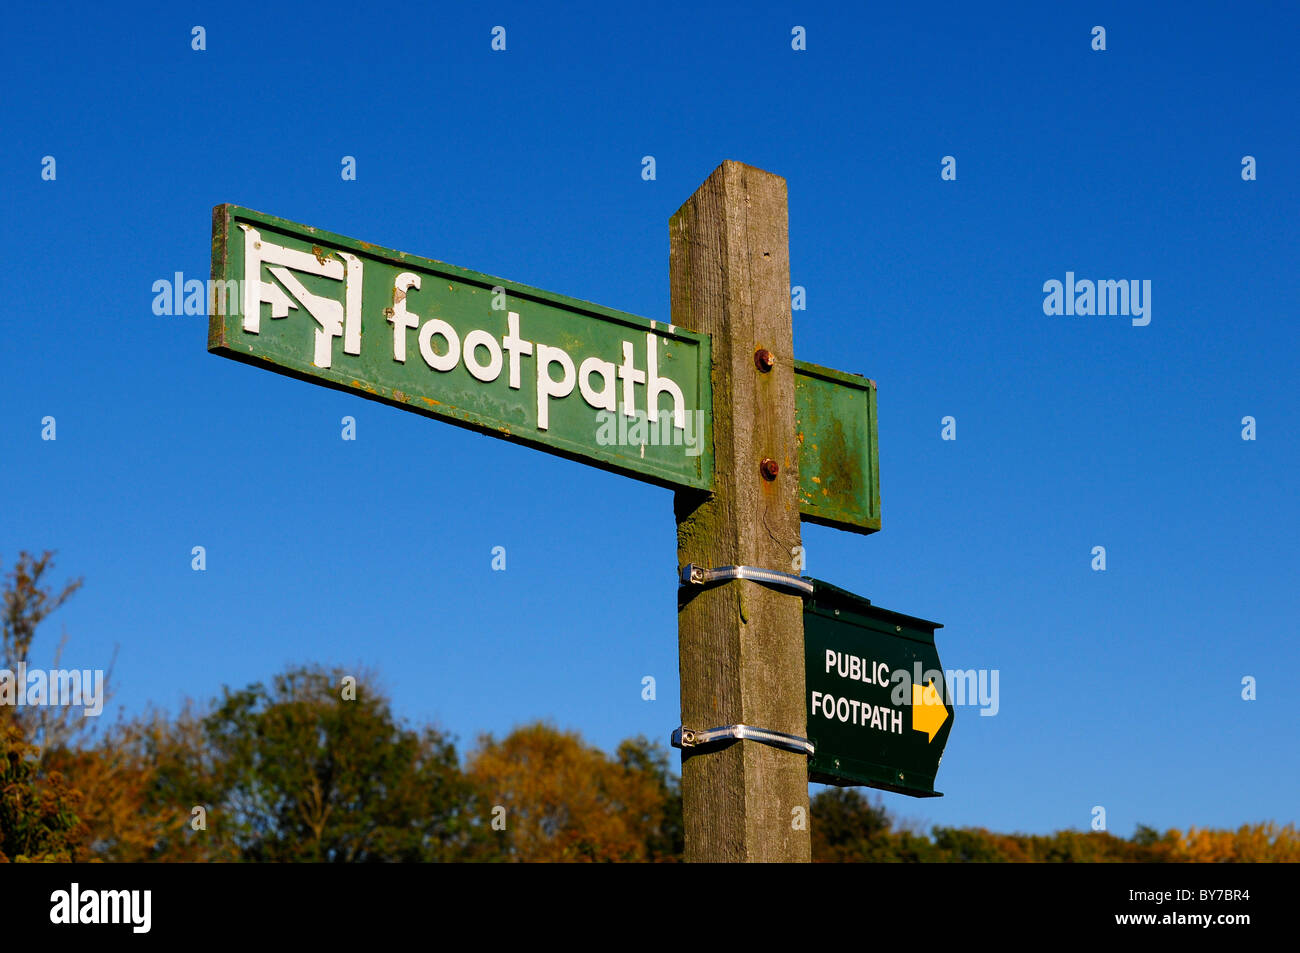 Public footpath sign, England - Stock Image